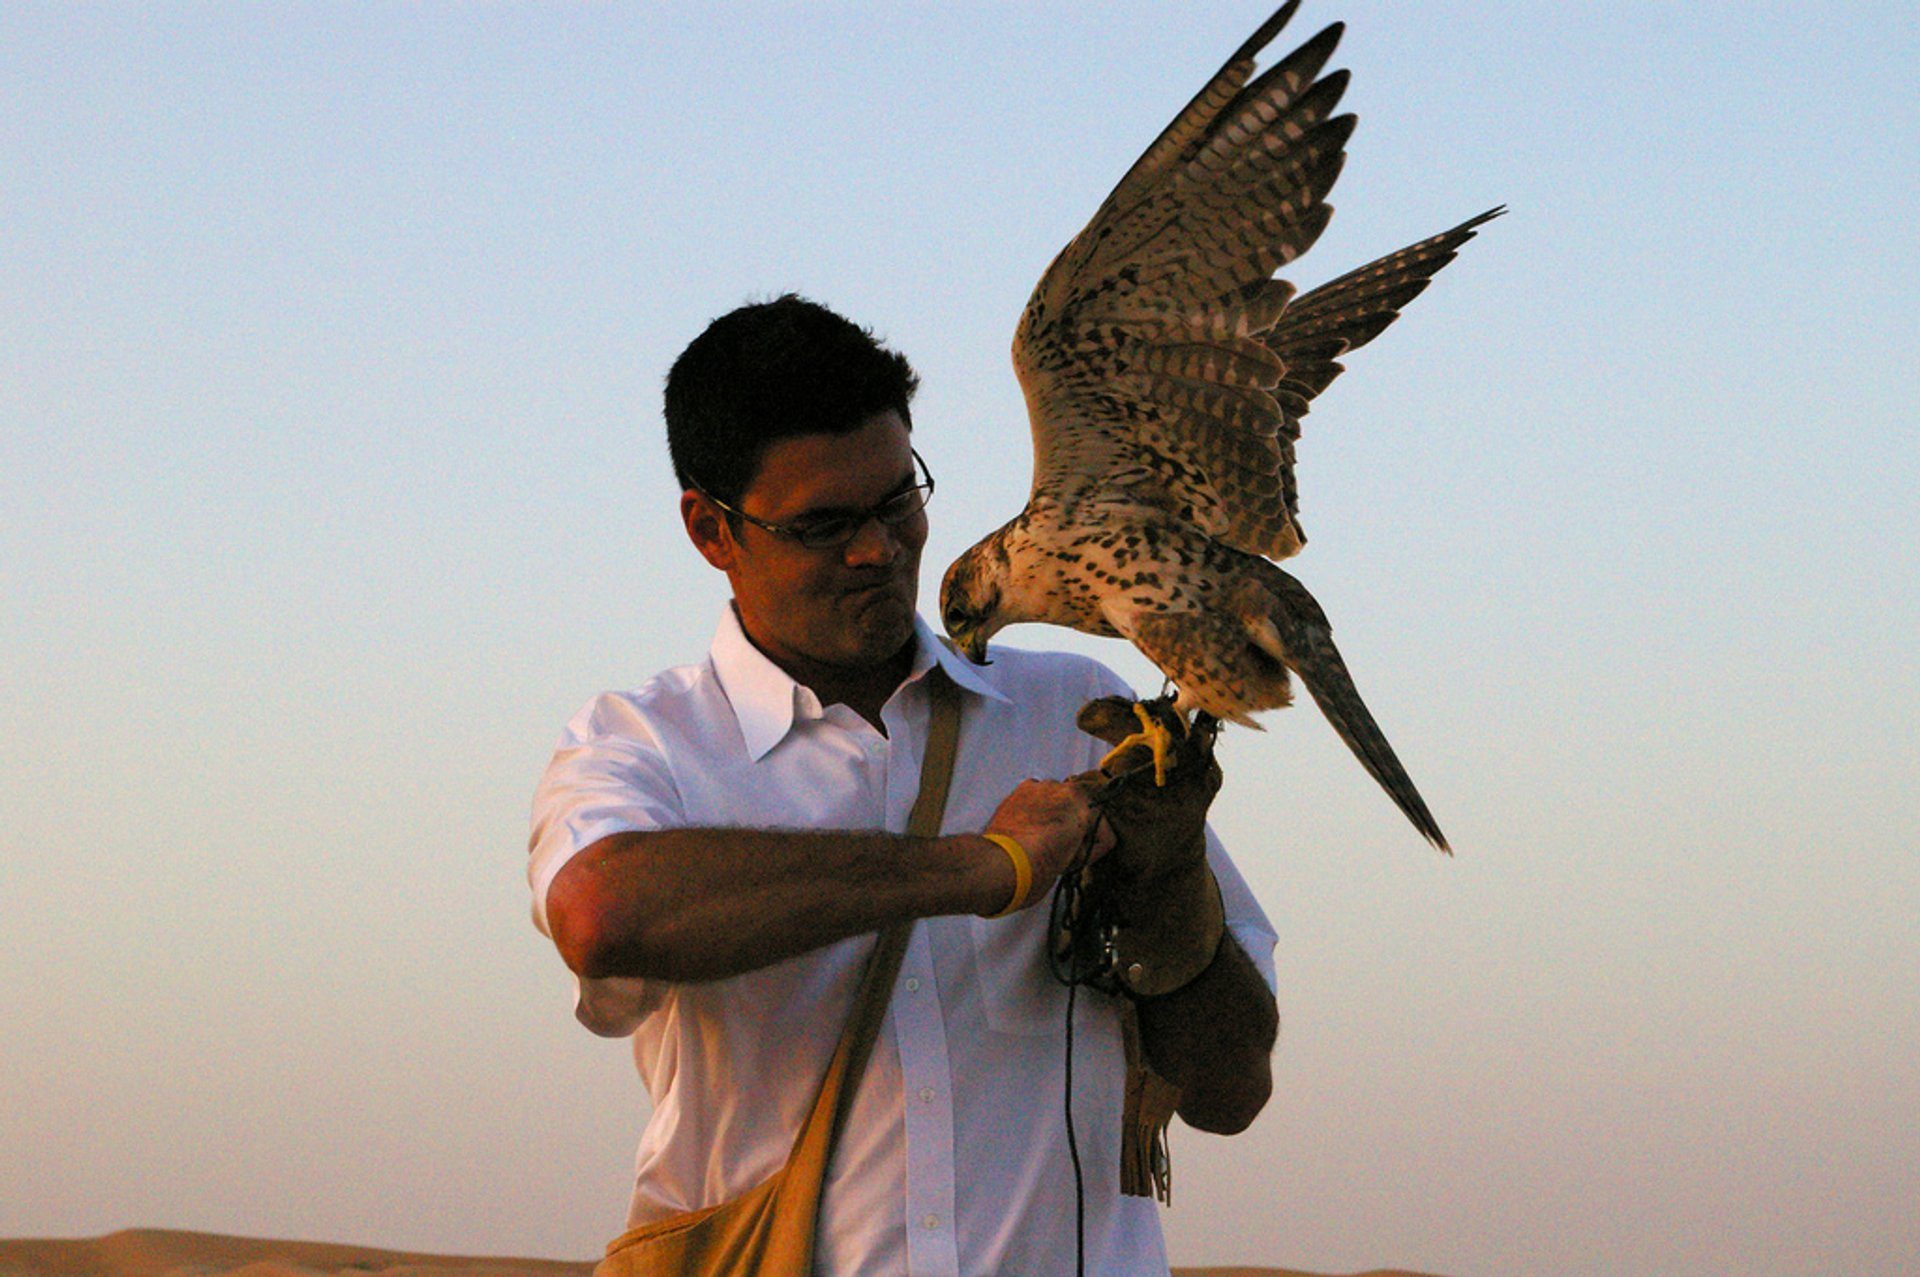 Falconry in Dubai - Best Season 2020